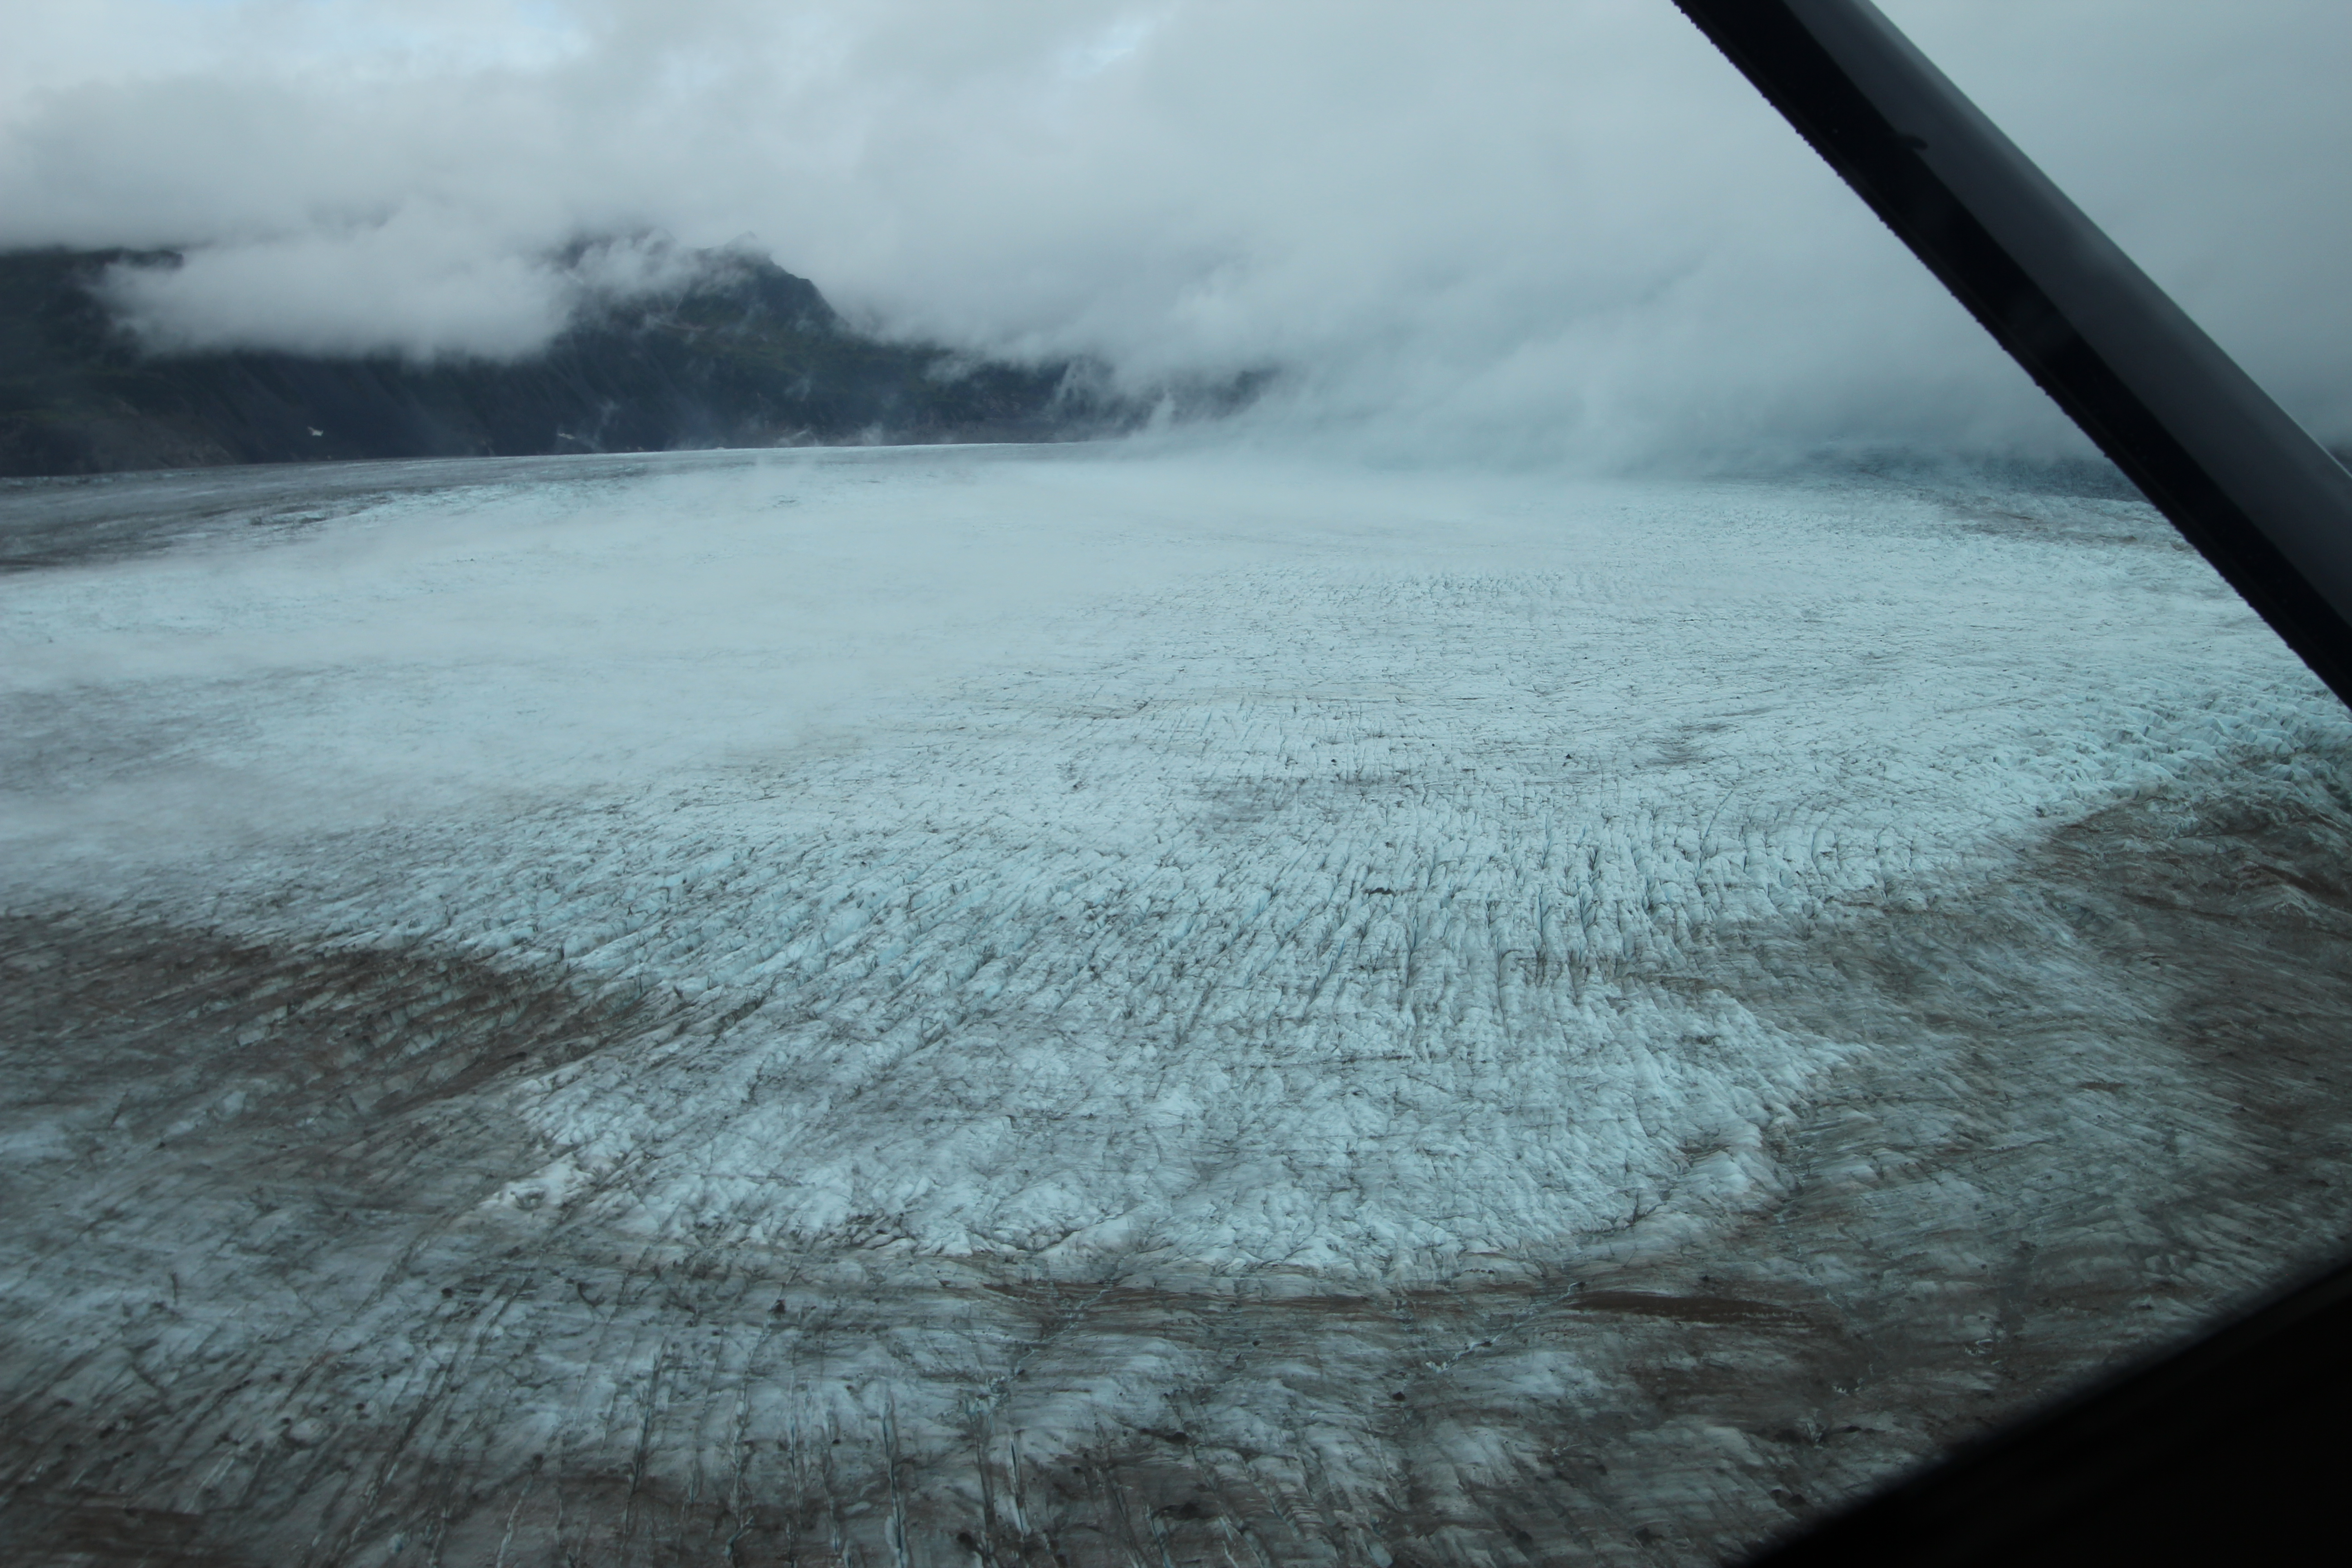 Flying up above the Triumvirate Glacier the weather was closing in, but our pilot, John Ellison, skilfully managed to get us through the turbulence between the clouds flowing down from the Tordrillo Mountains and the ice below to reveal the source of the flood…